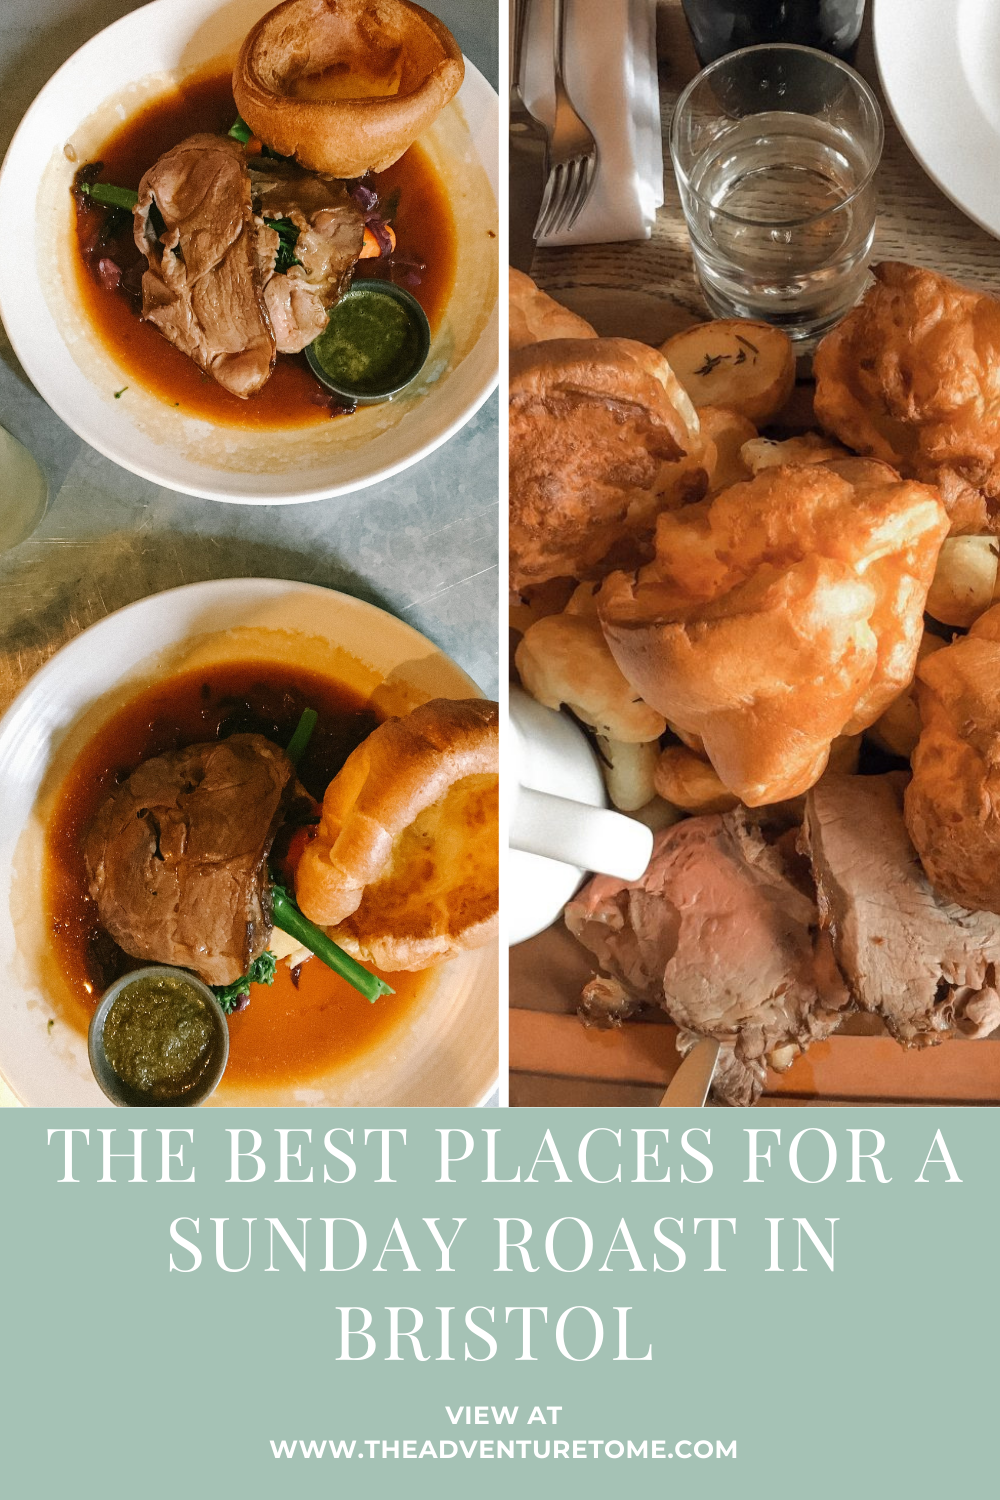 The best places for a Sunday Roast in Bristol